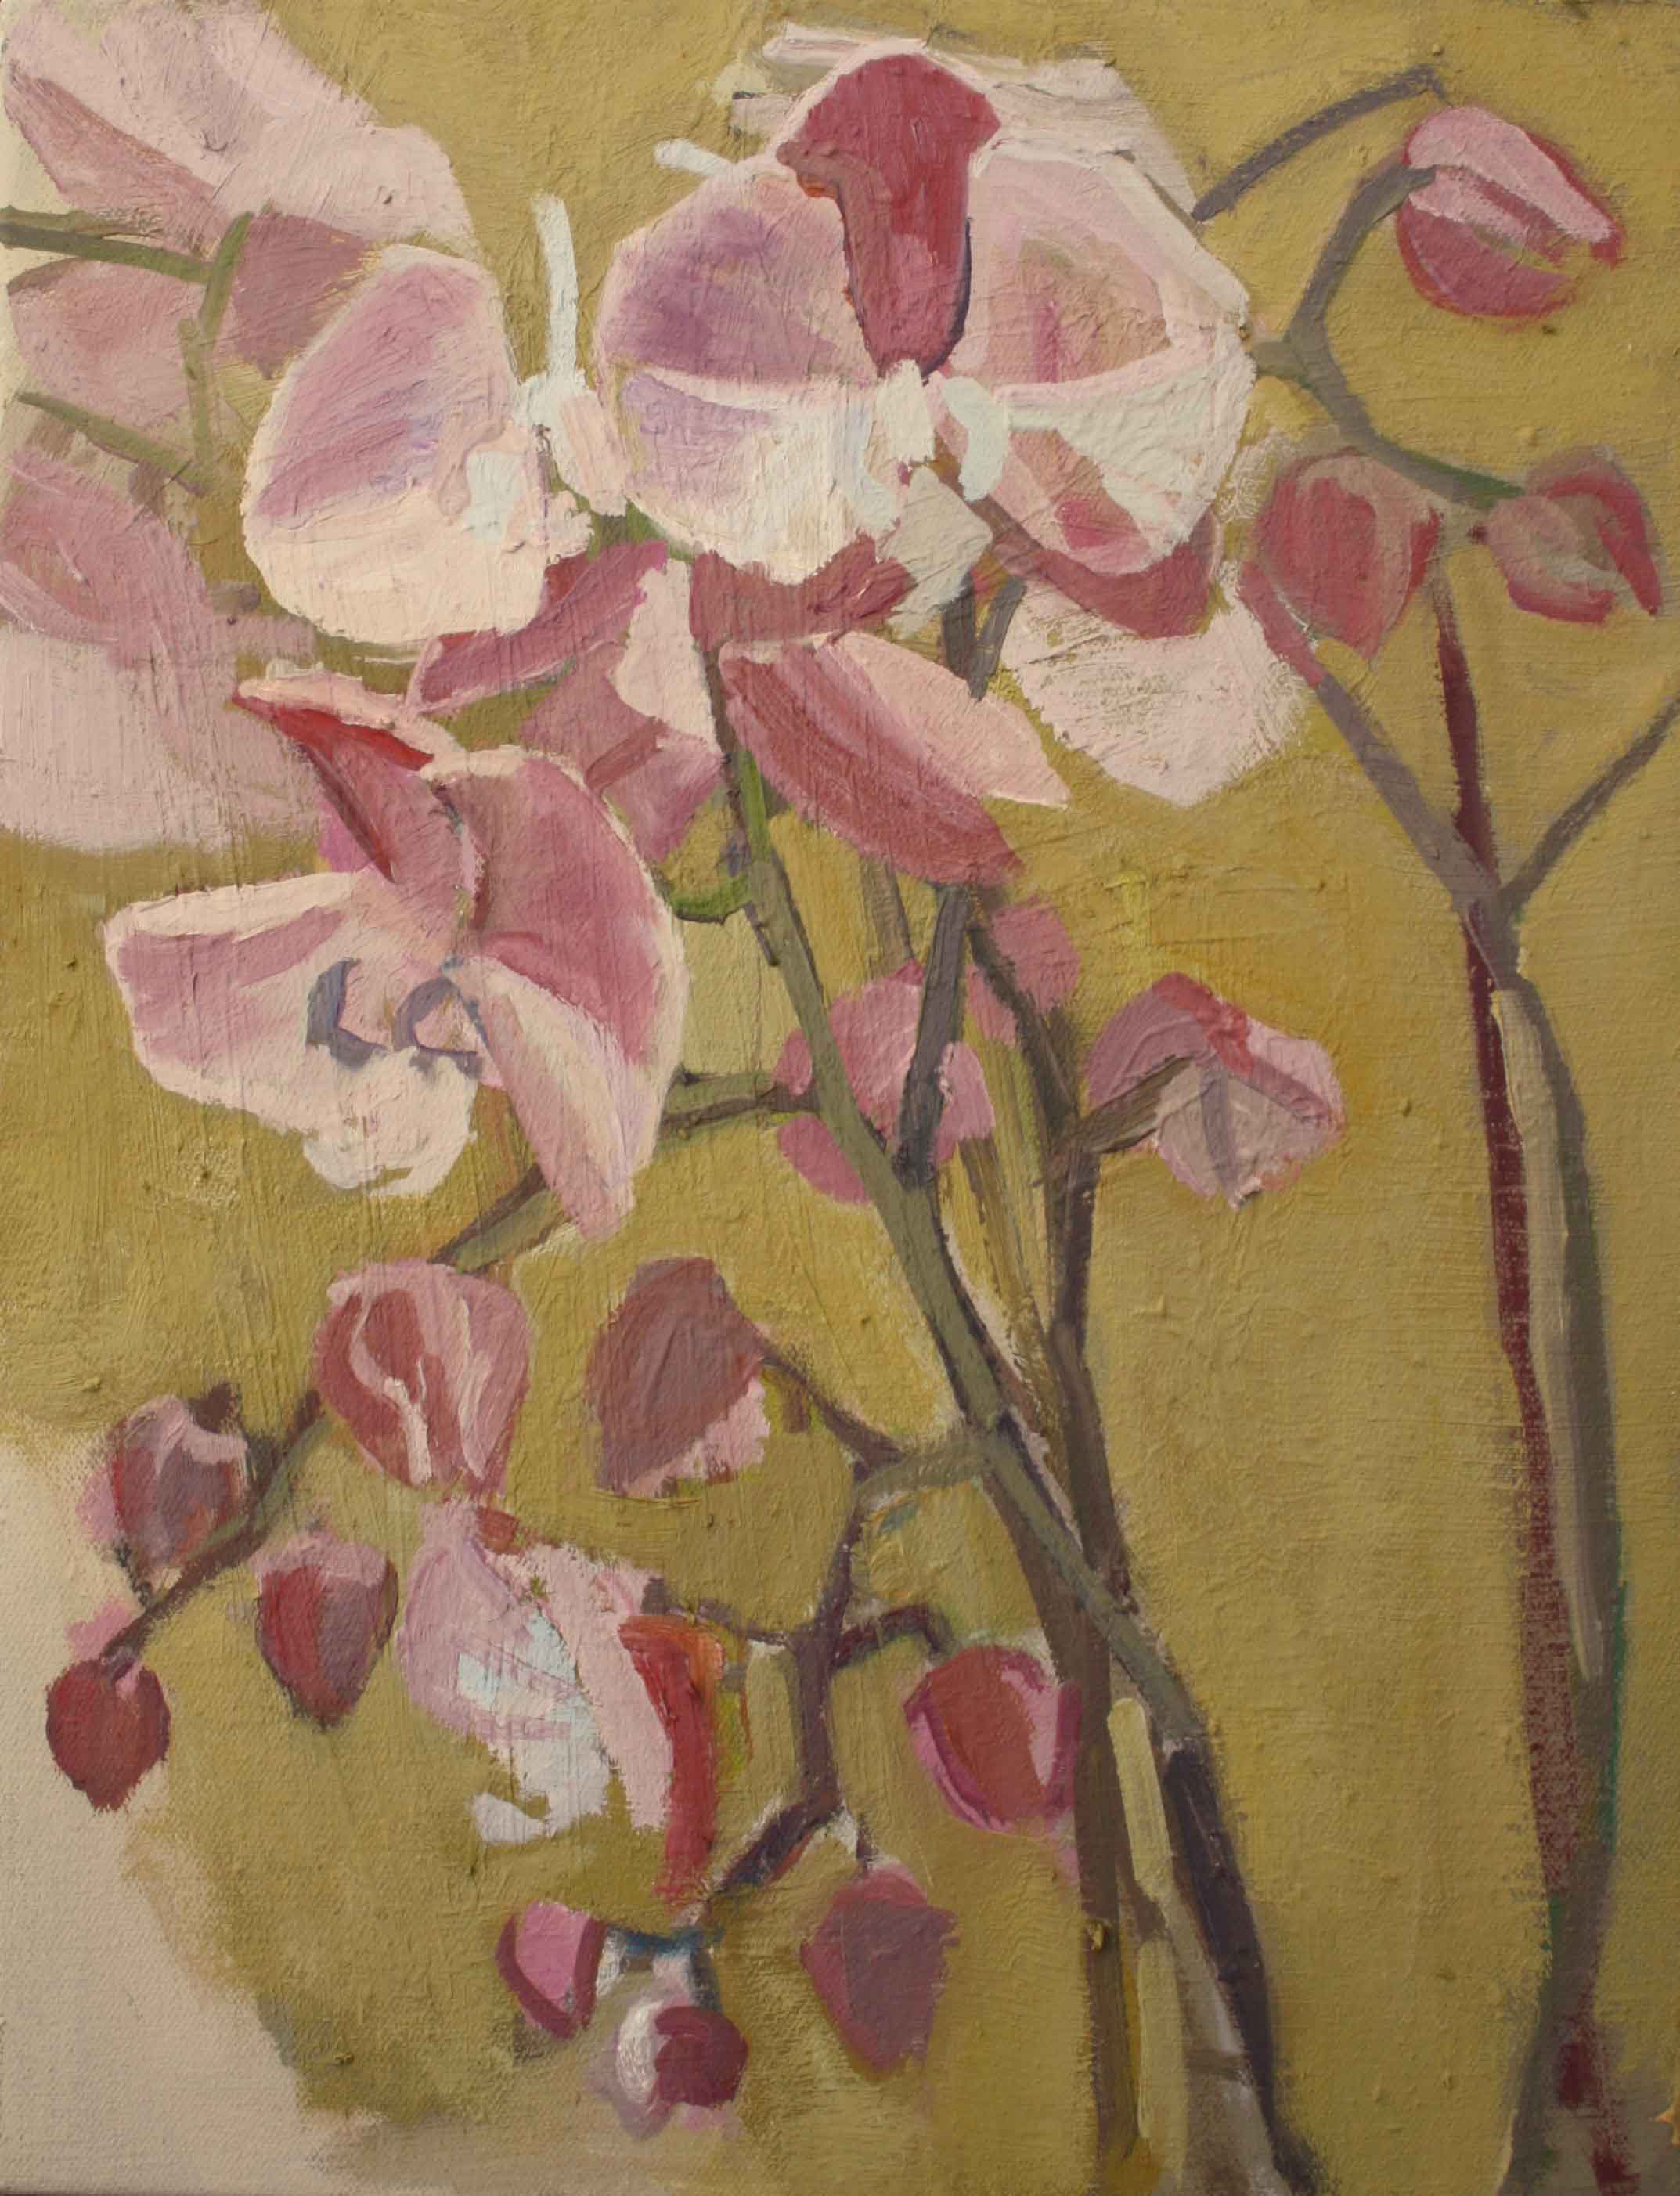 35 x 27 cm Pink Orchid II, Oil on Canvas